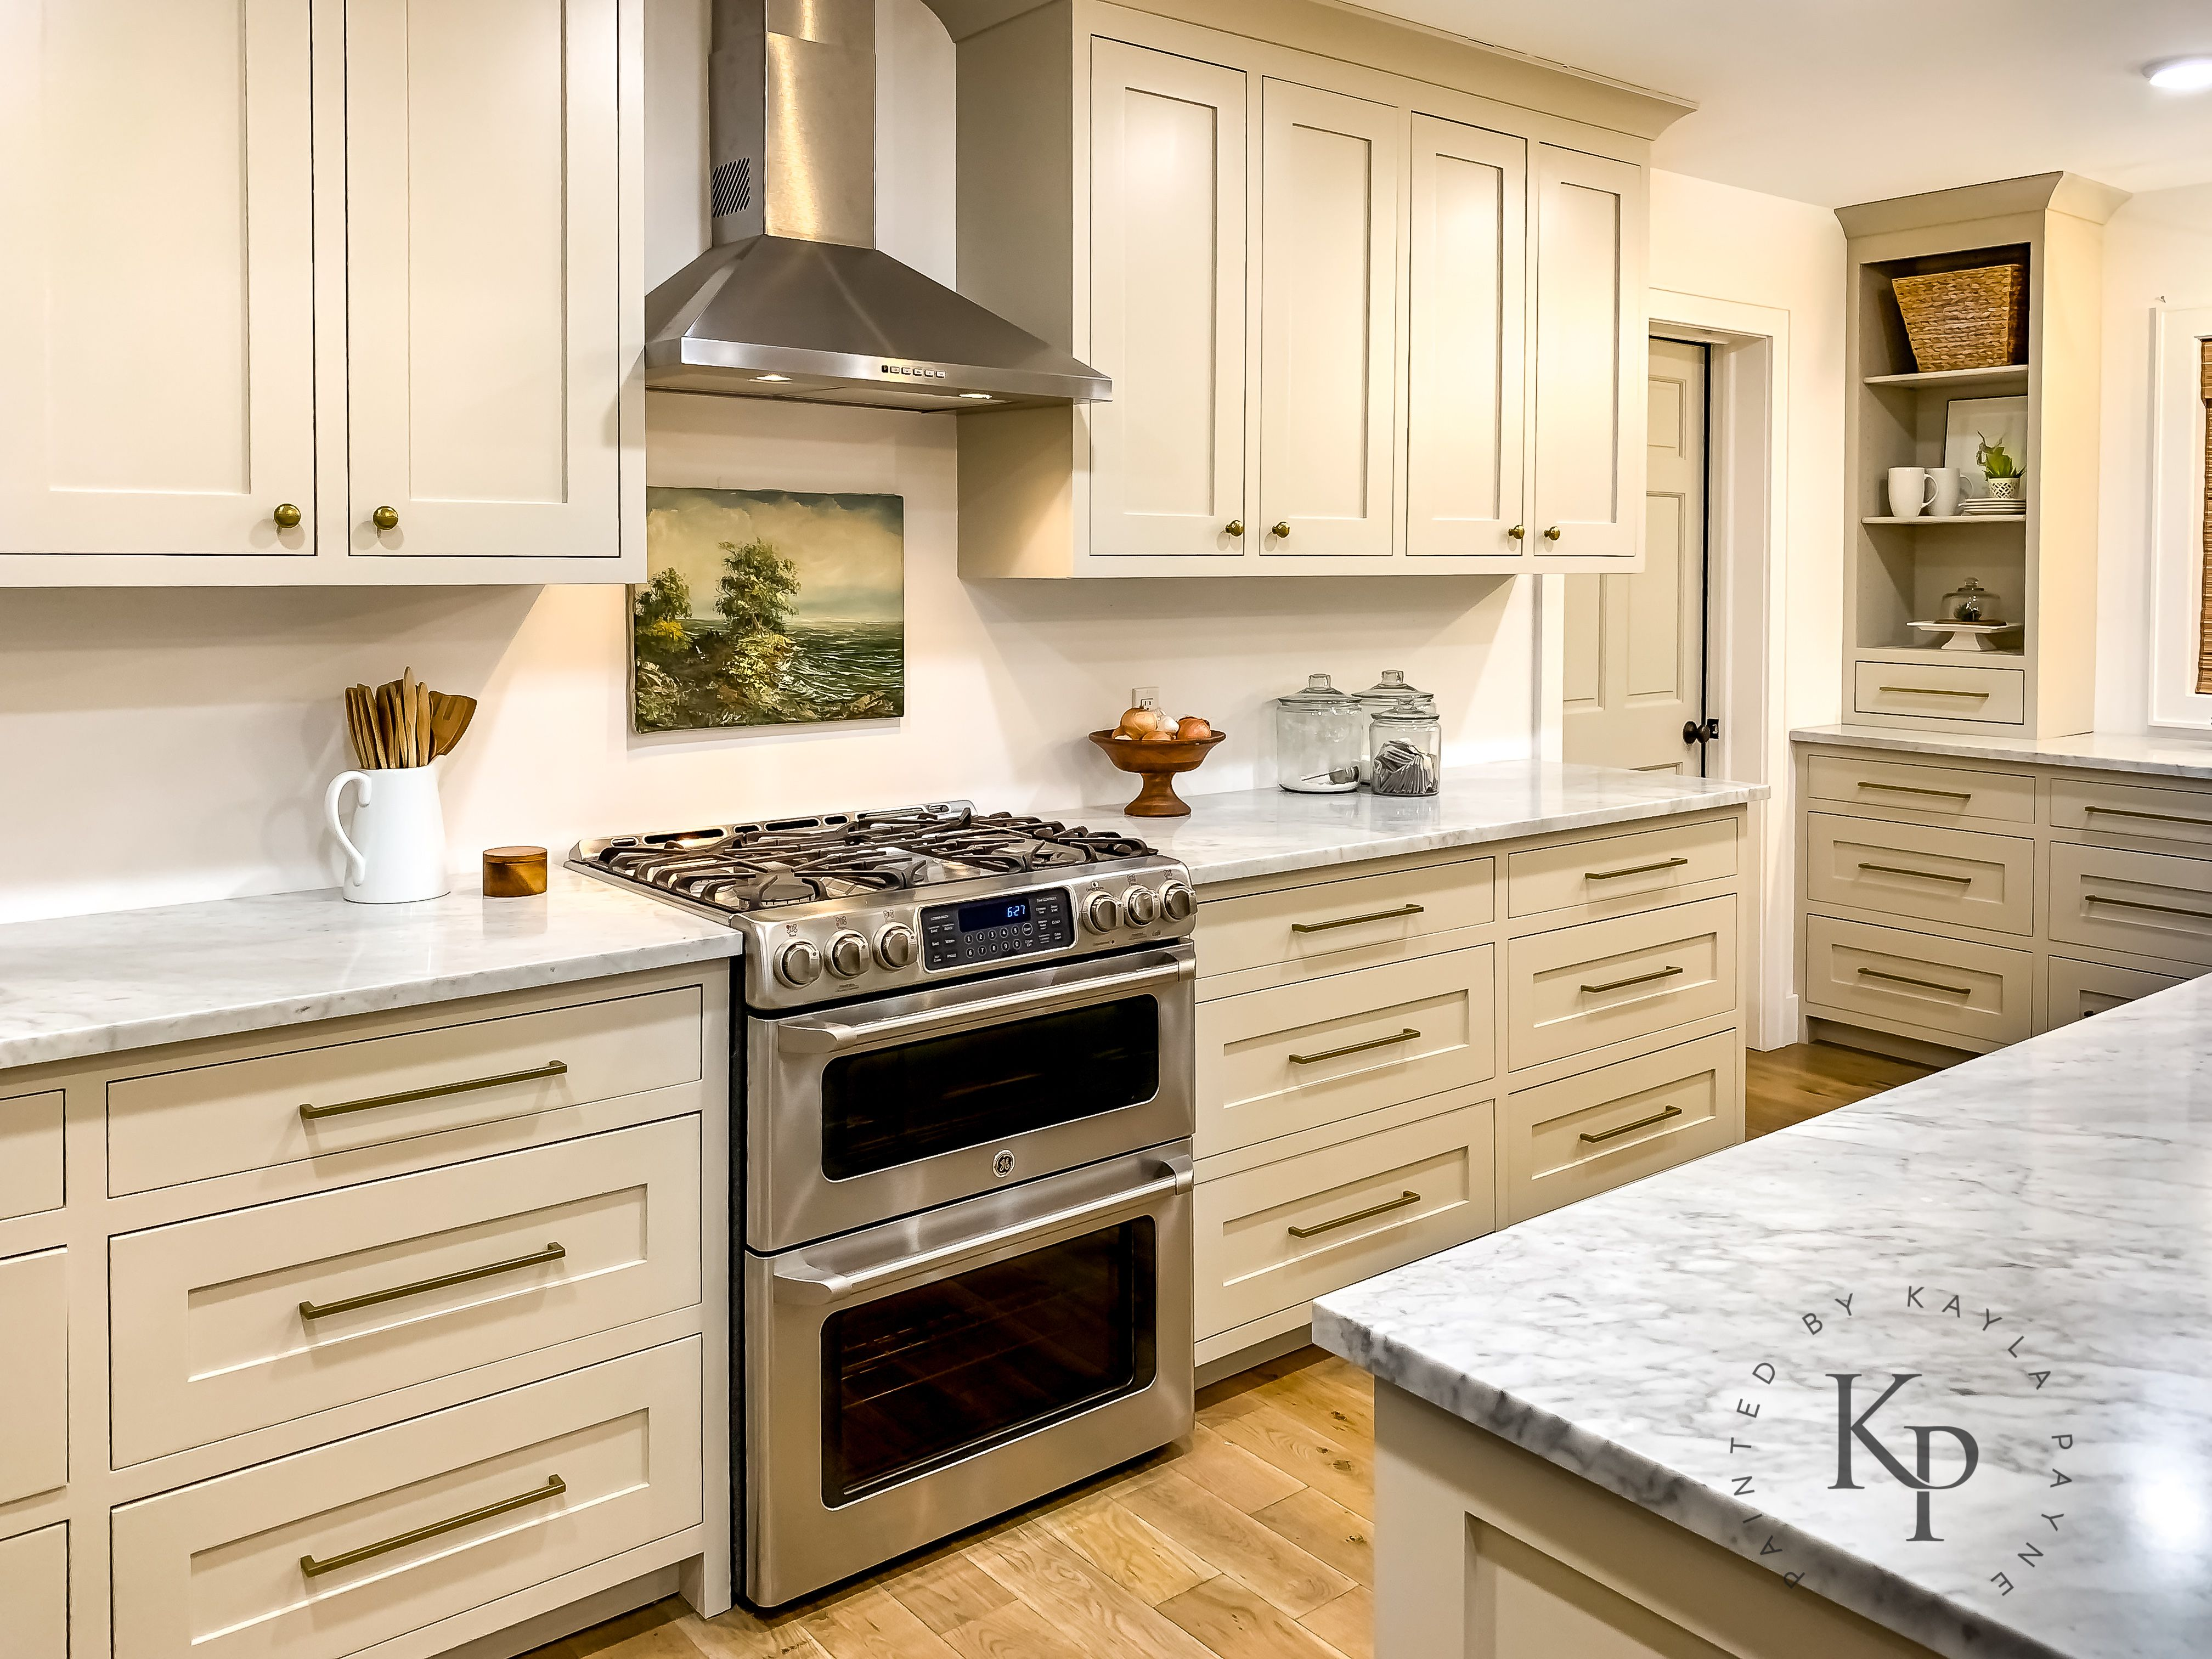 Revere Pewter Kitchen Cabinets Painted By Kayla Payne Revere Pewter Kitchen Painting Kitchen Cabinets Kitchen Cabinets